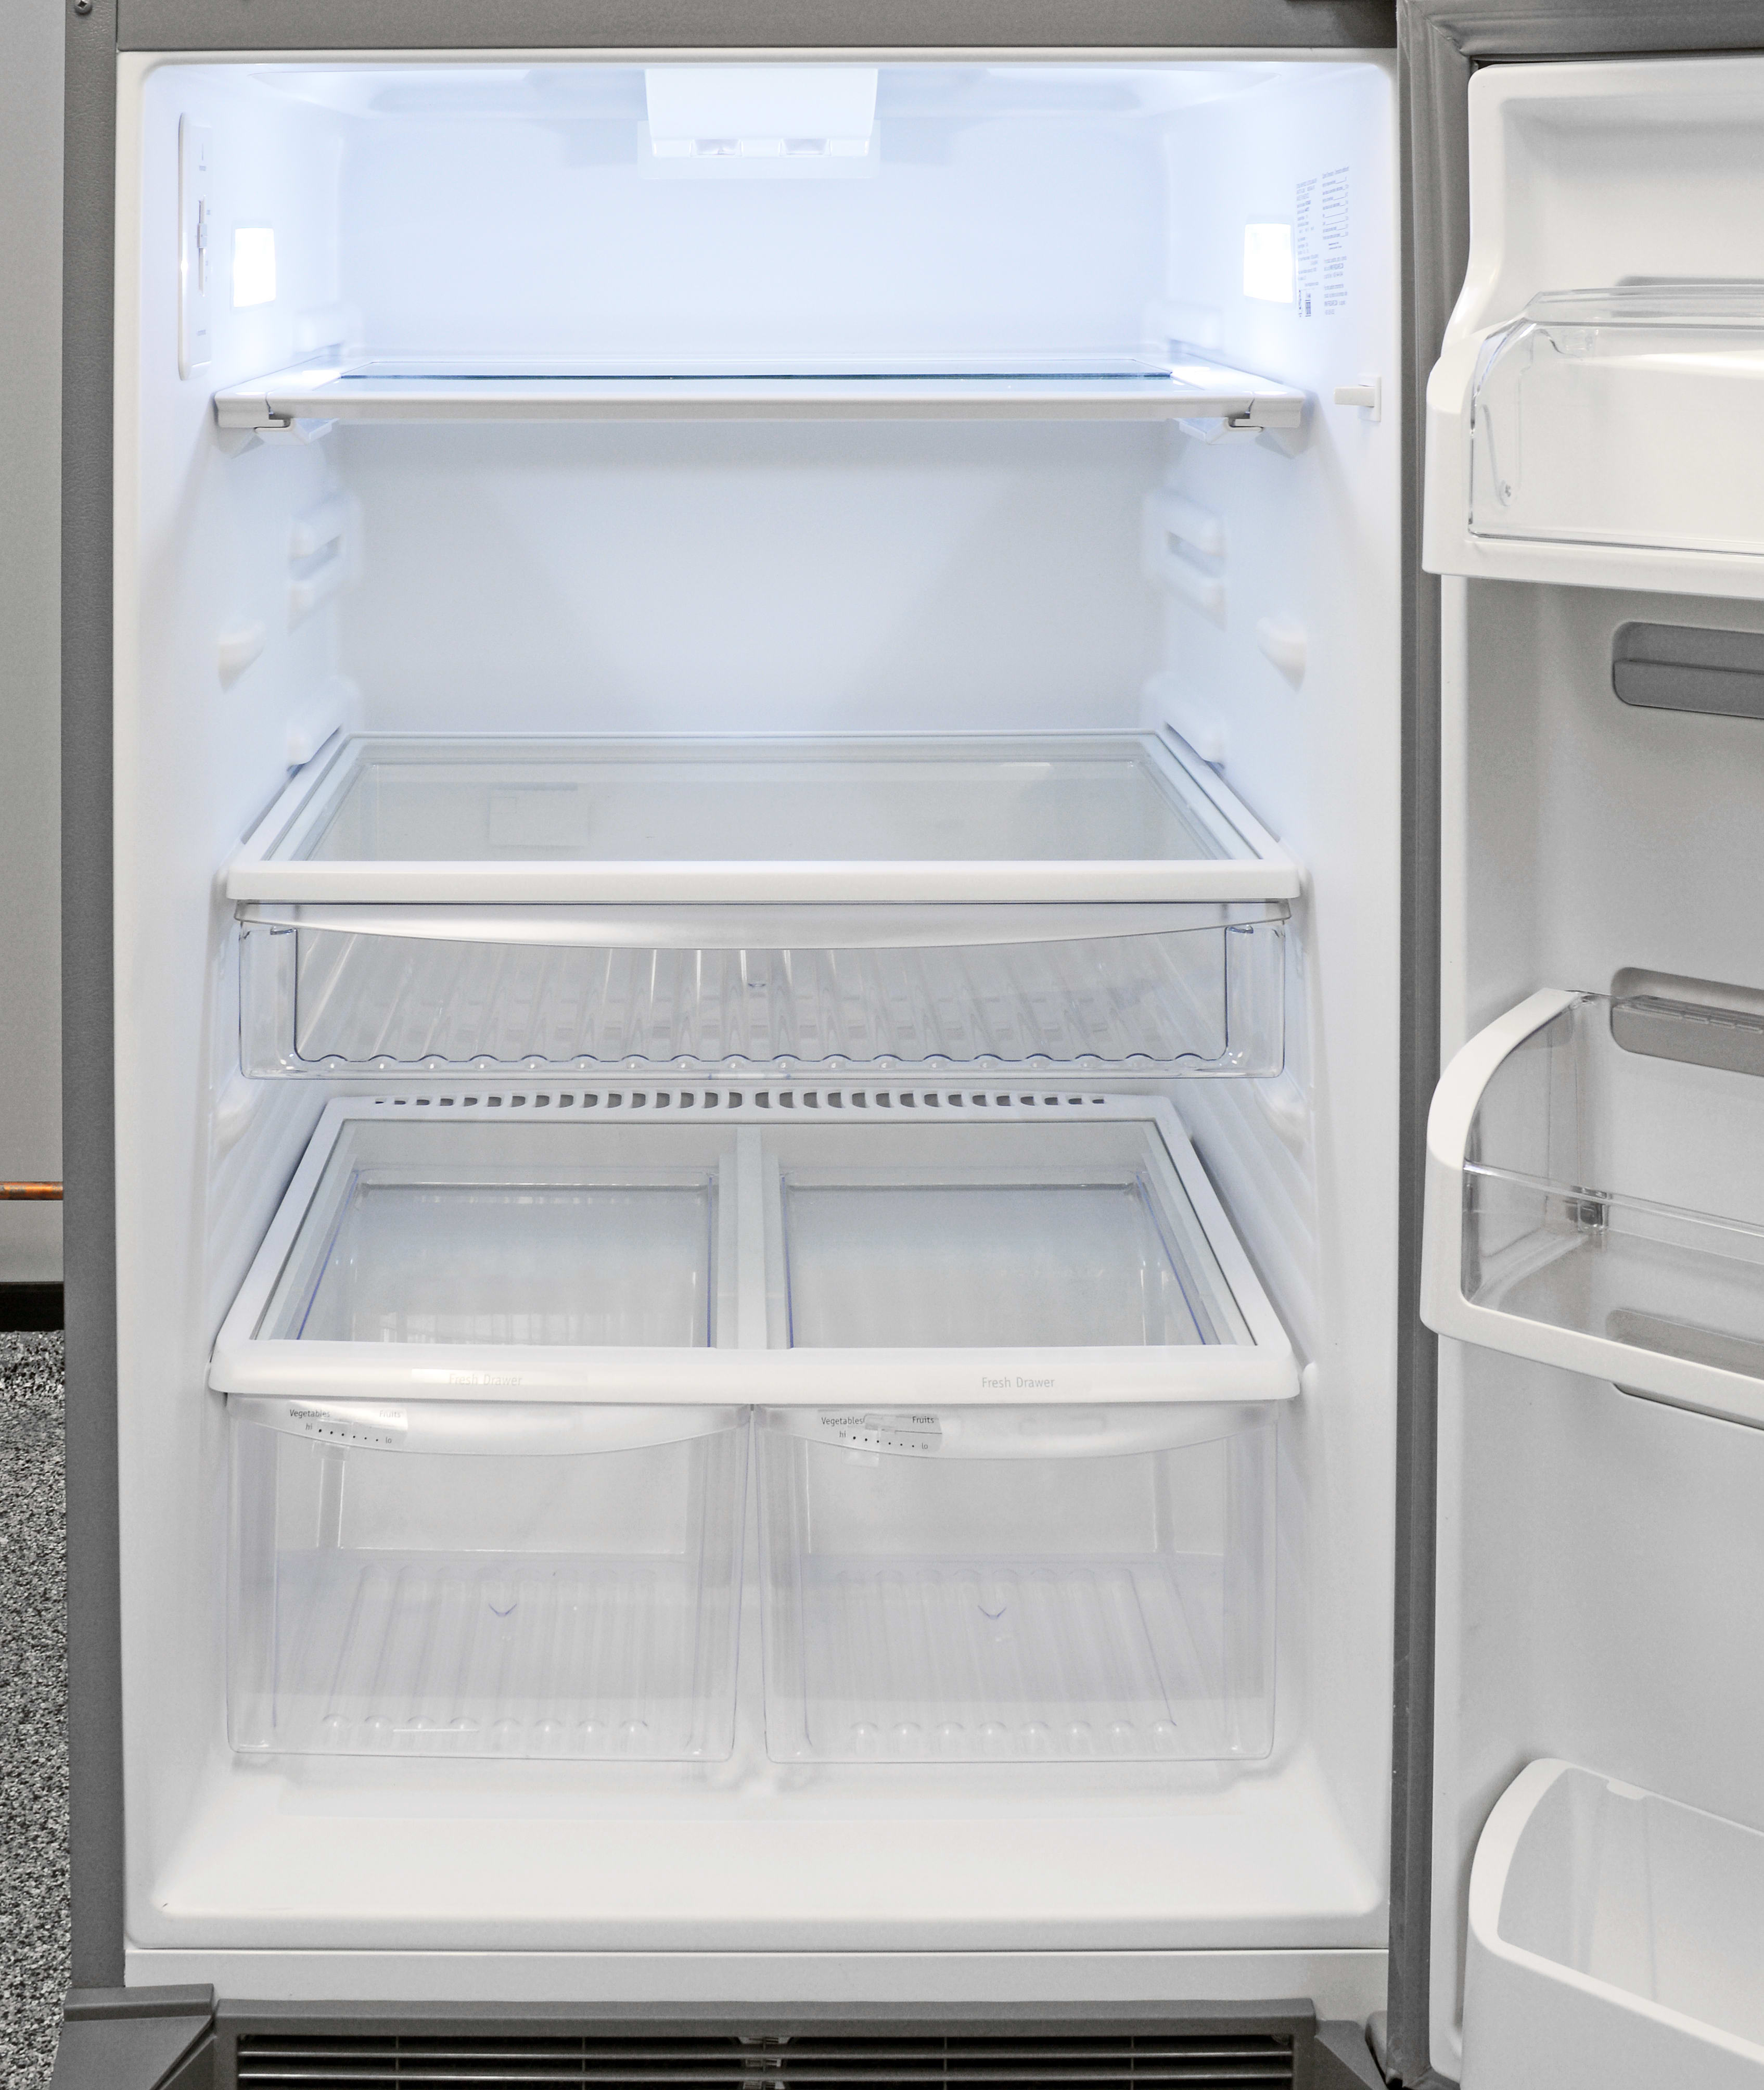 The Frigidaire Gallery FGHT2046QF's top shelf features a retractable front half for storing tall items.